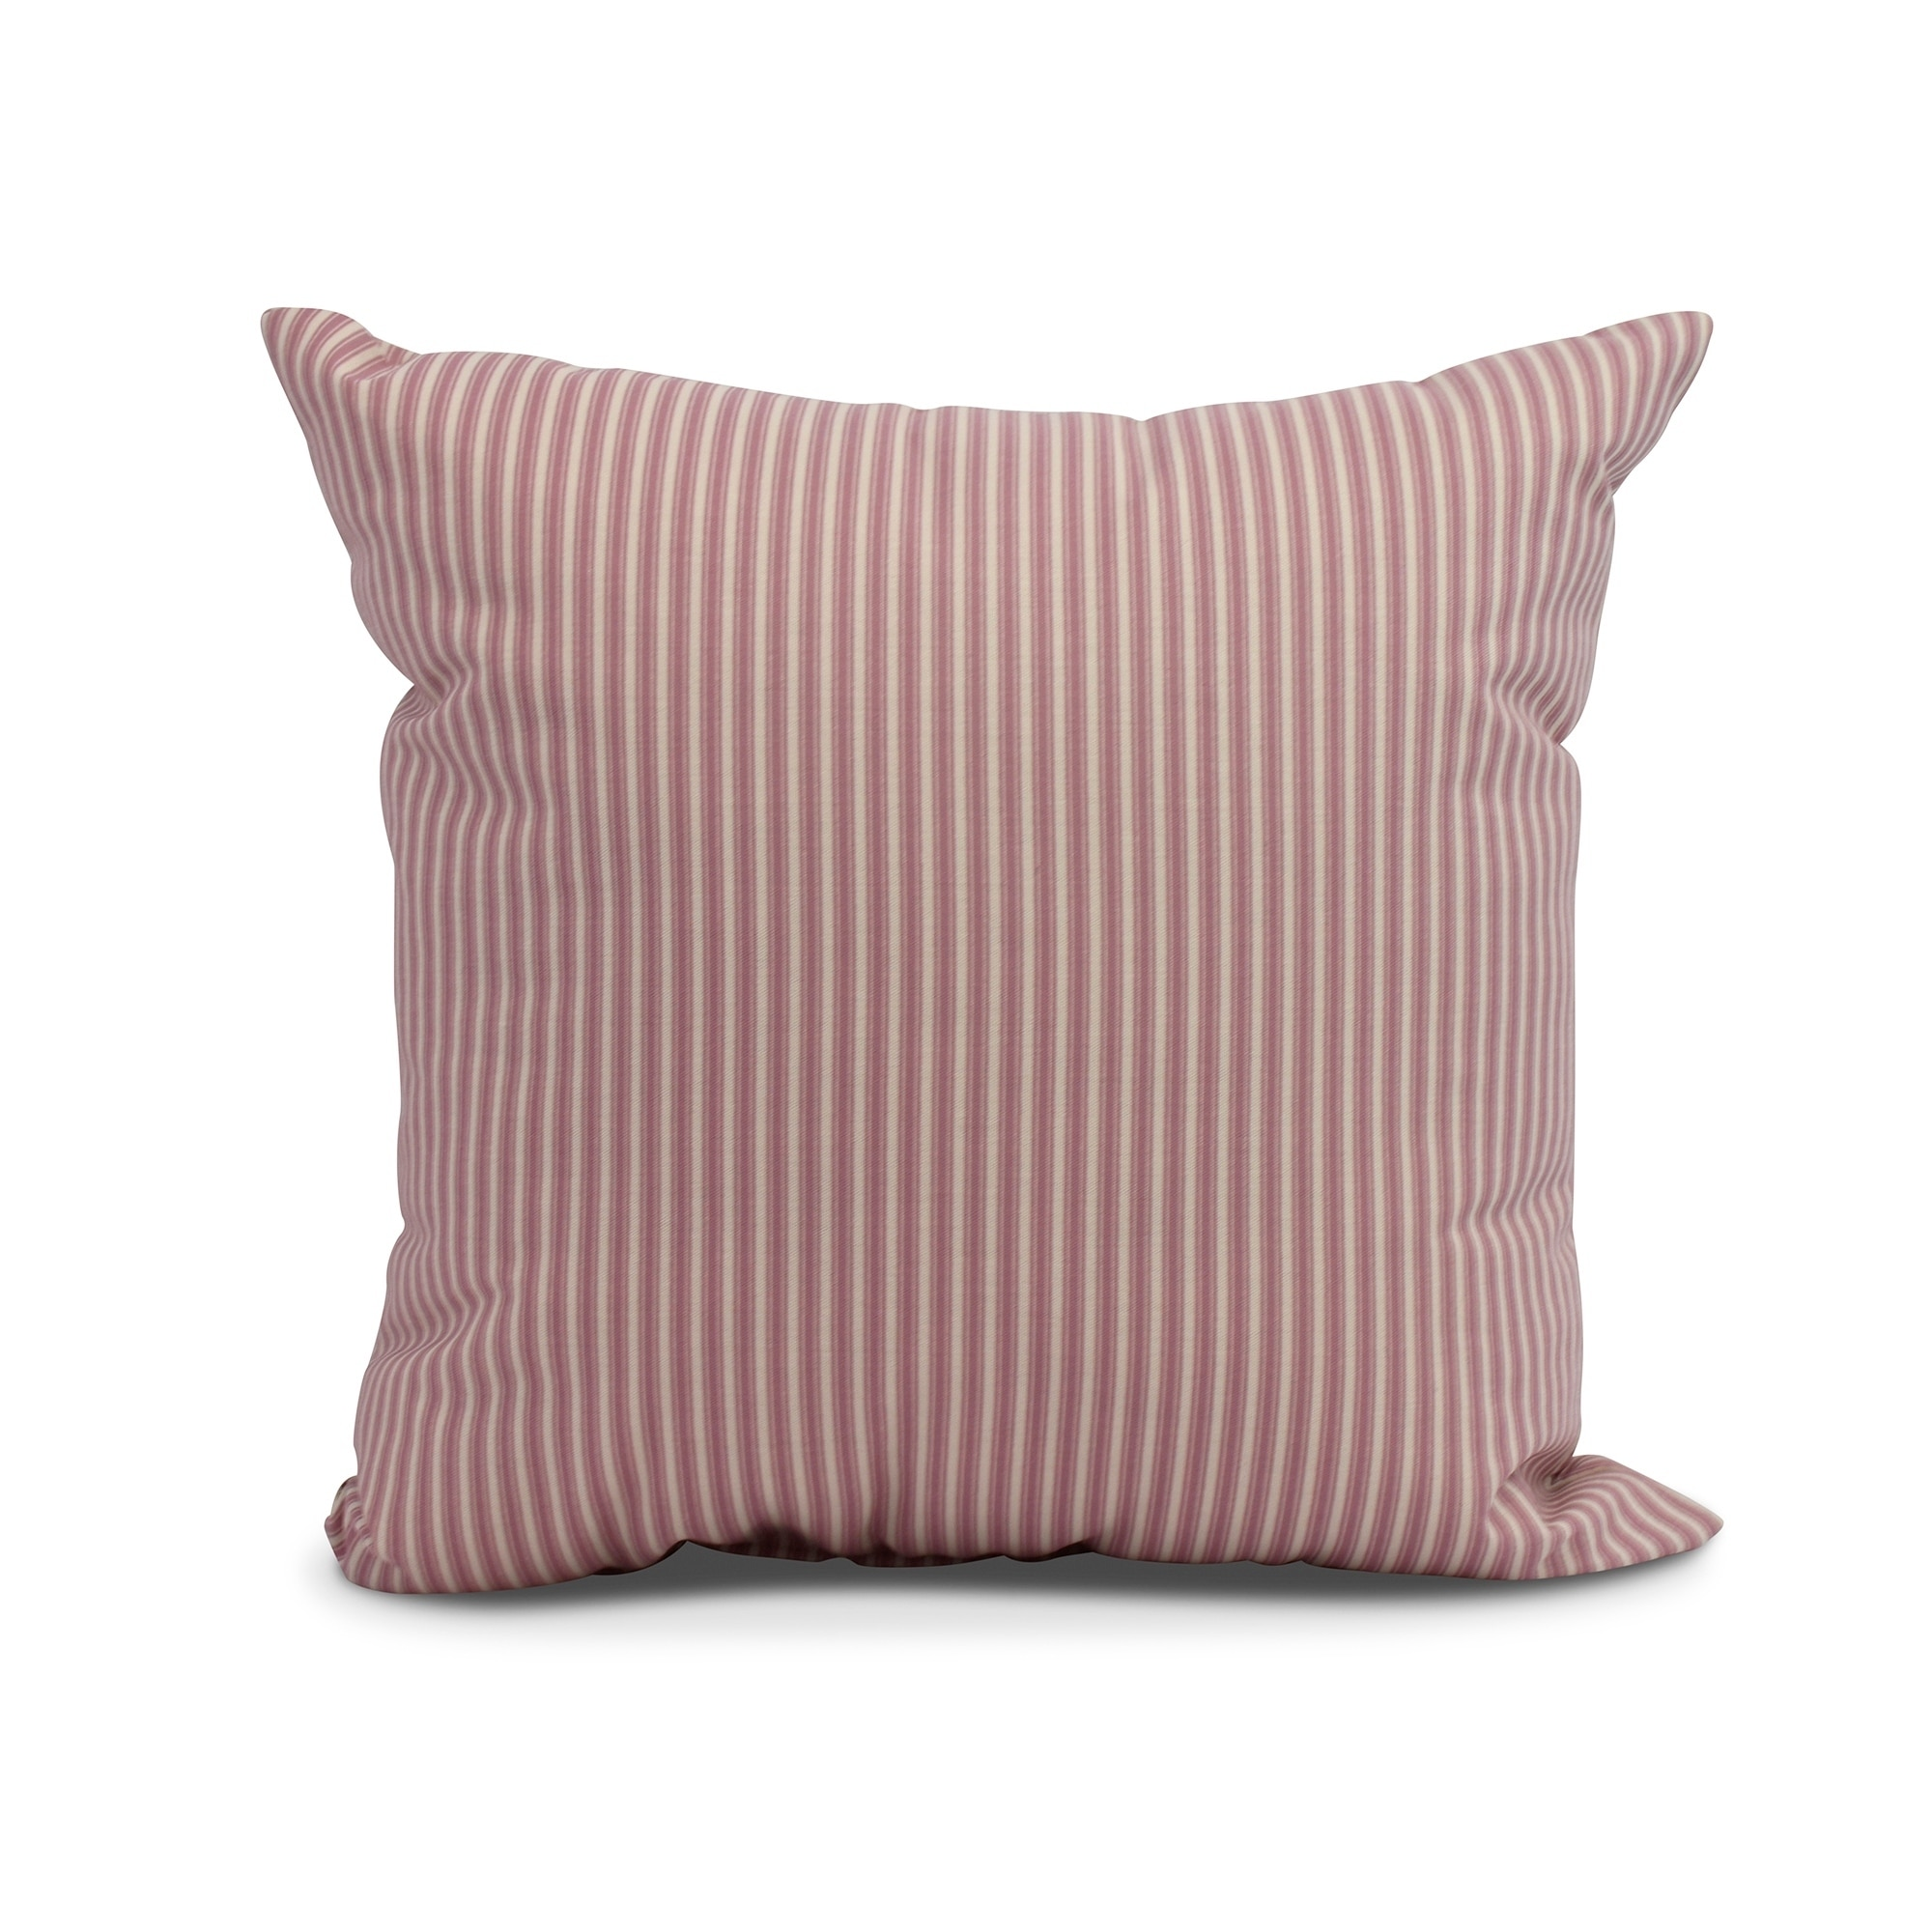 Https Overstock Liquidations Ati Home Gates Tendencies Sling Bag Twin Side Pocket Burgundy Maroon 16 X Inch Ticking Stripe Outdoor Pillow 6a12cb2d 0104 4a29 9188 D65d216188bb